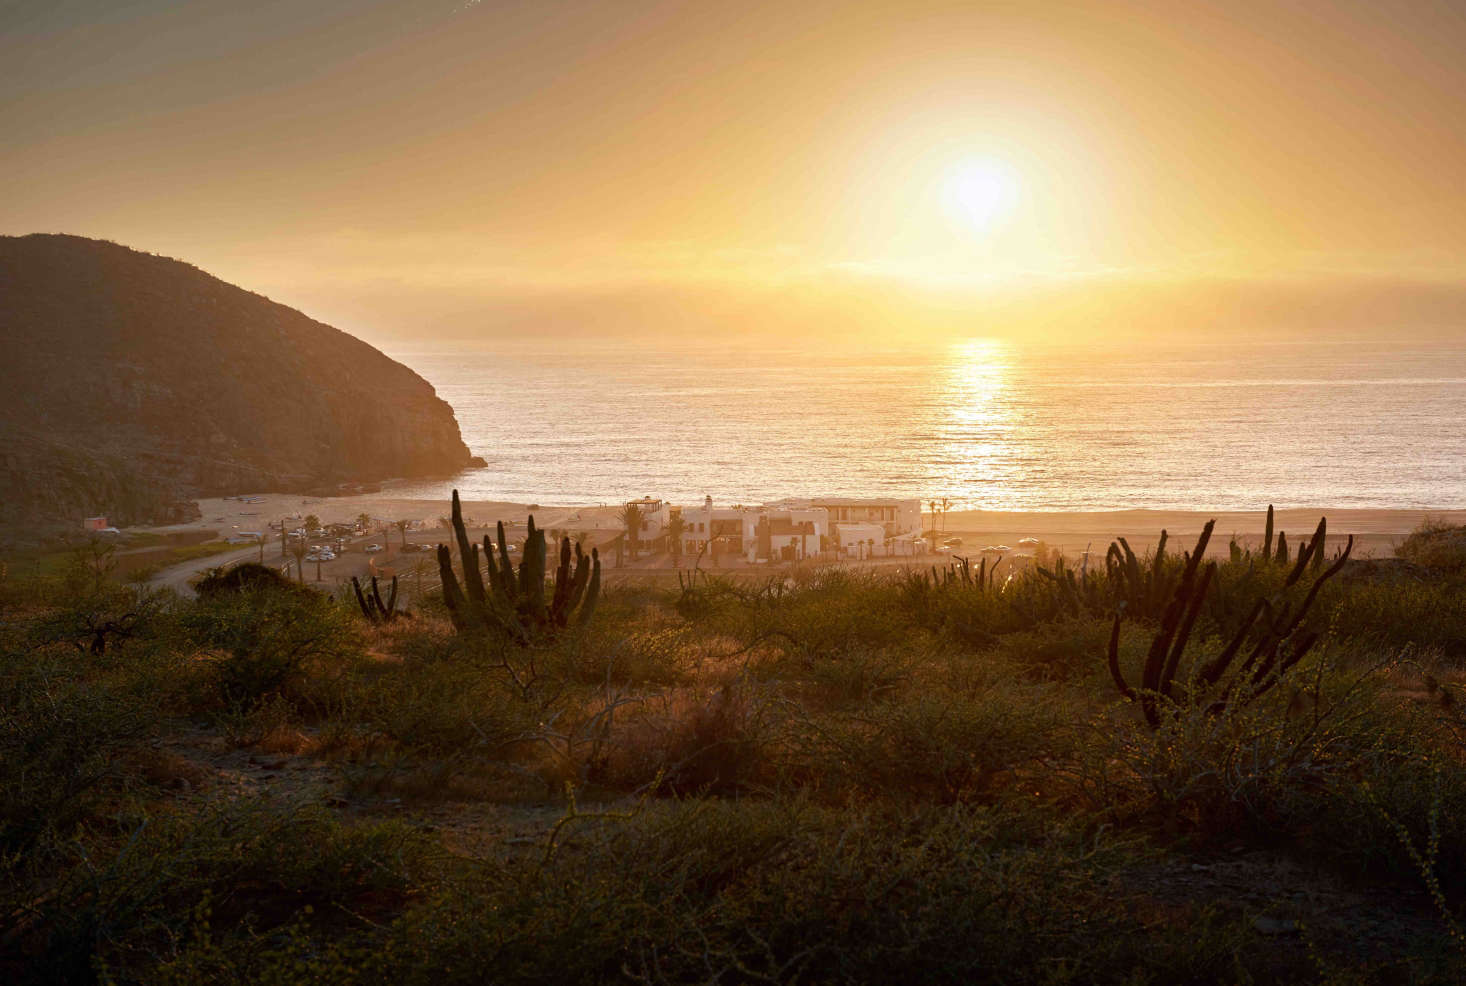 The hotel is perched on the beach in Todos Santos, Baja California Sur.